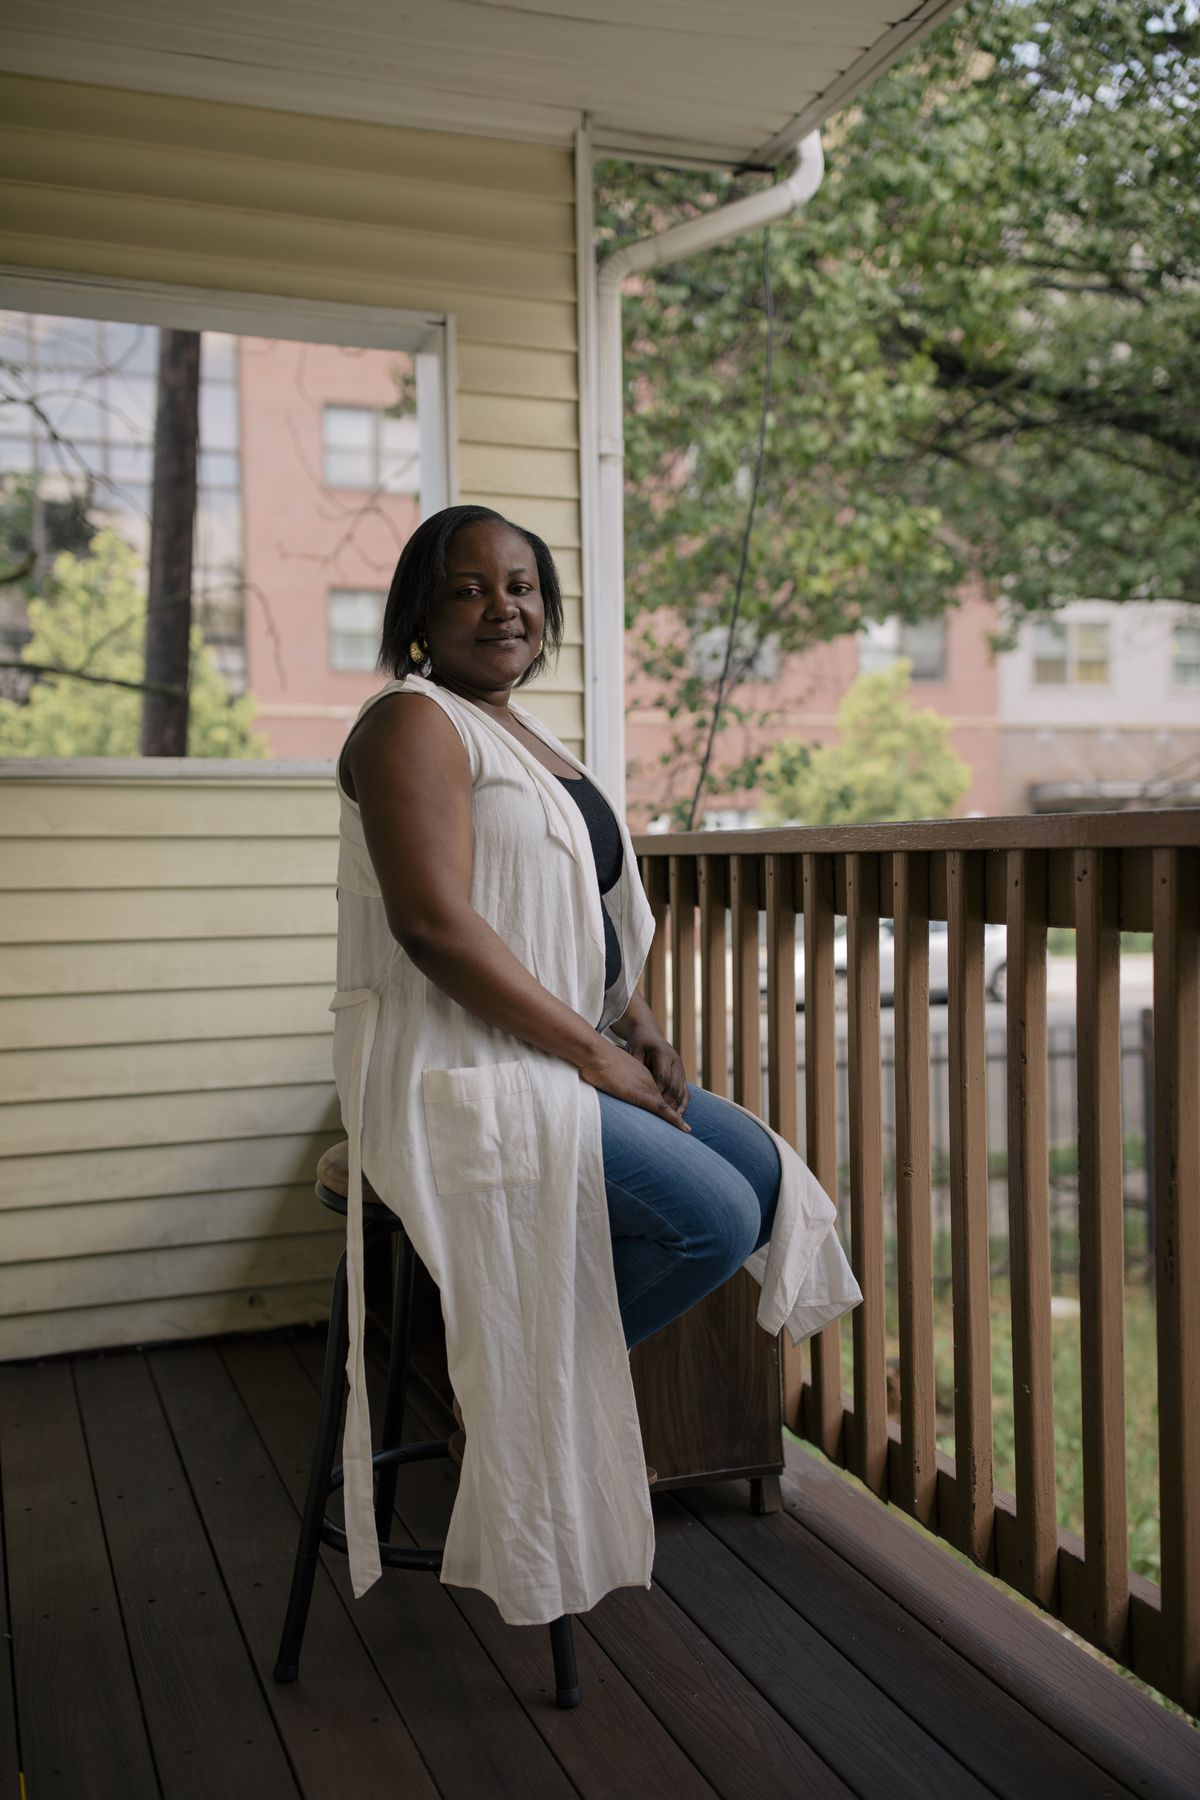 A portrait of Oyefunmilola Dairo on her wooden front porch on a bright day. She is seated on a stool wearing a large flowing white blouse as buildings and trees are reflected in a window just behind her.